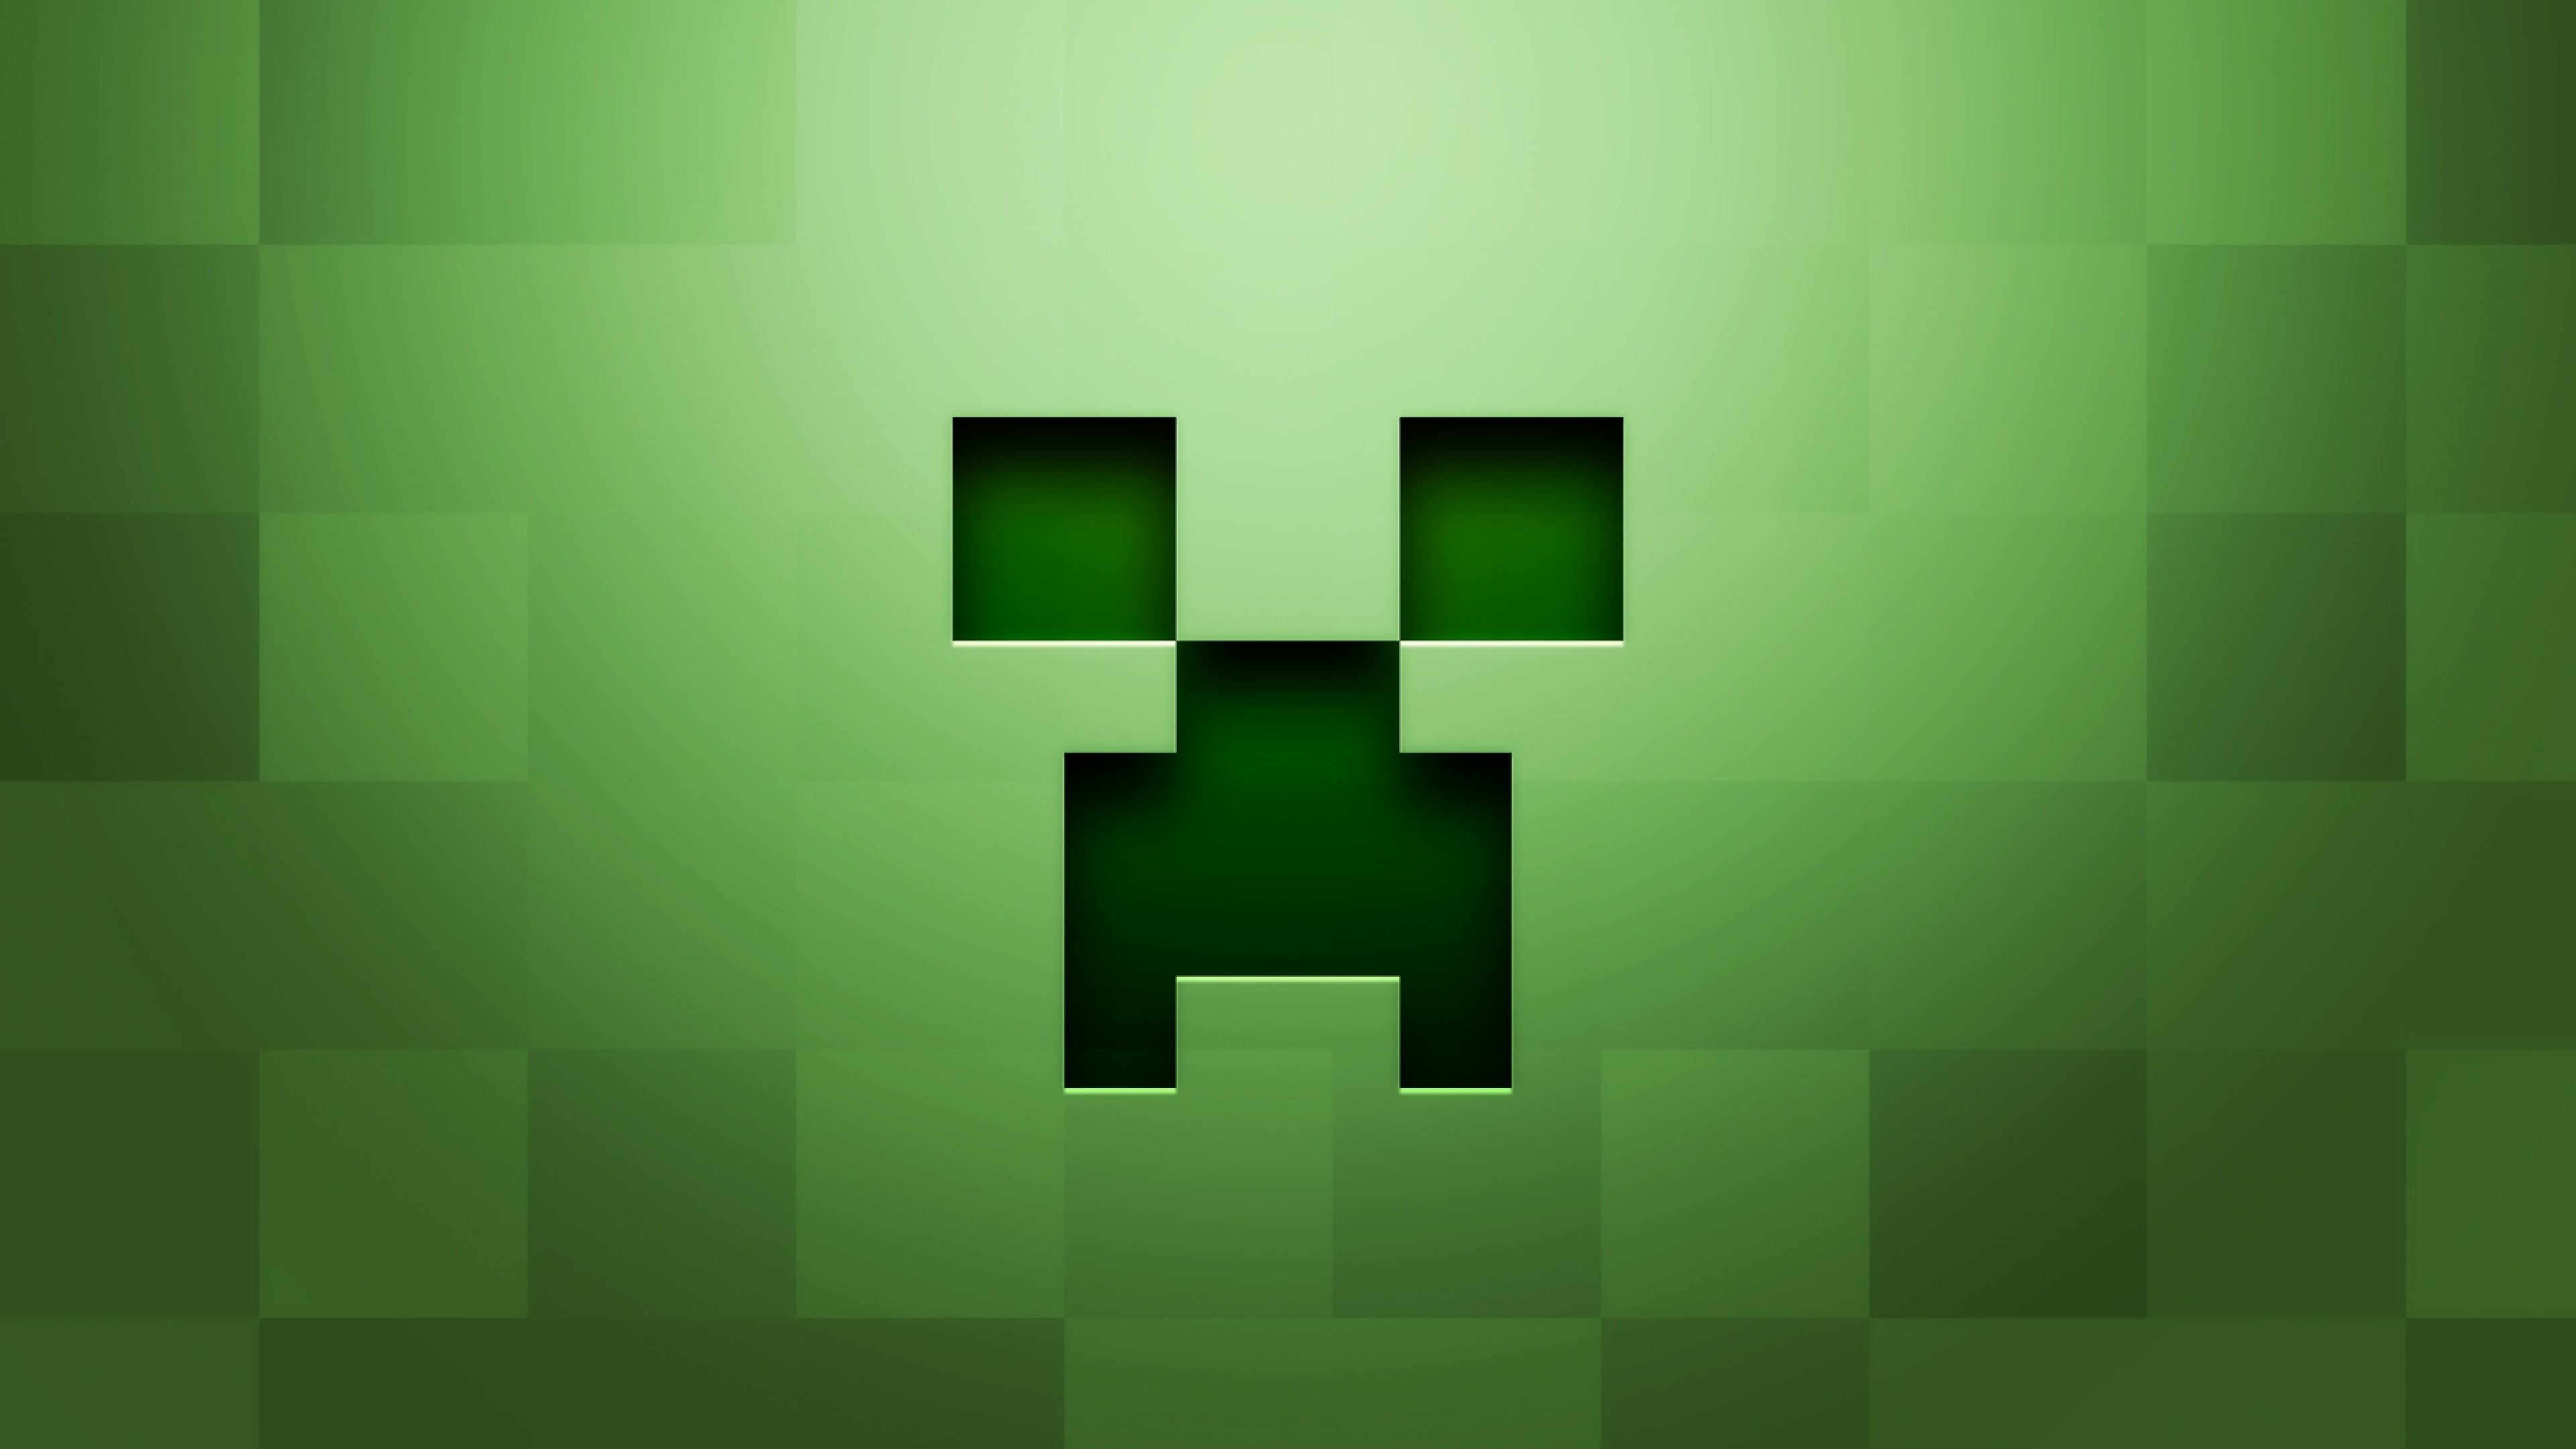 3840x2160 Preview wallpaper minecraft, background, graphics, green